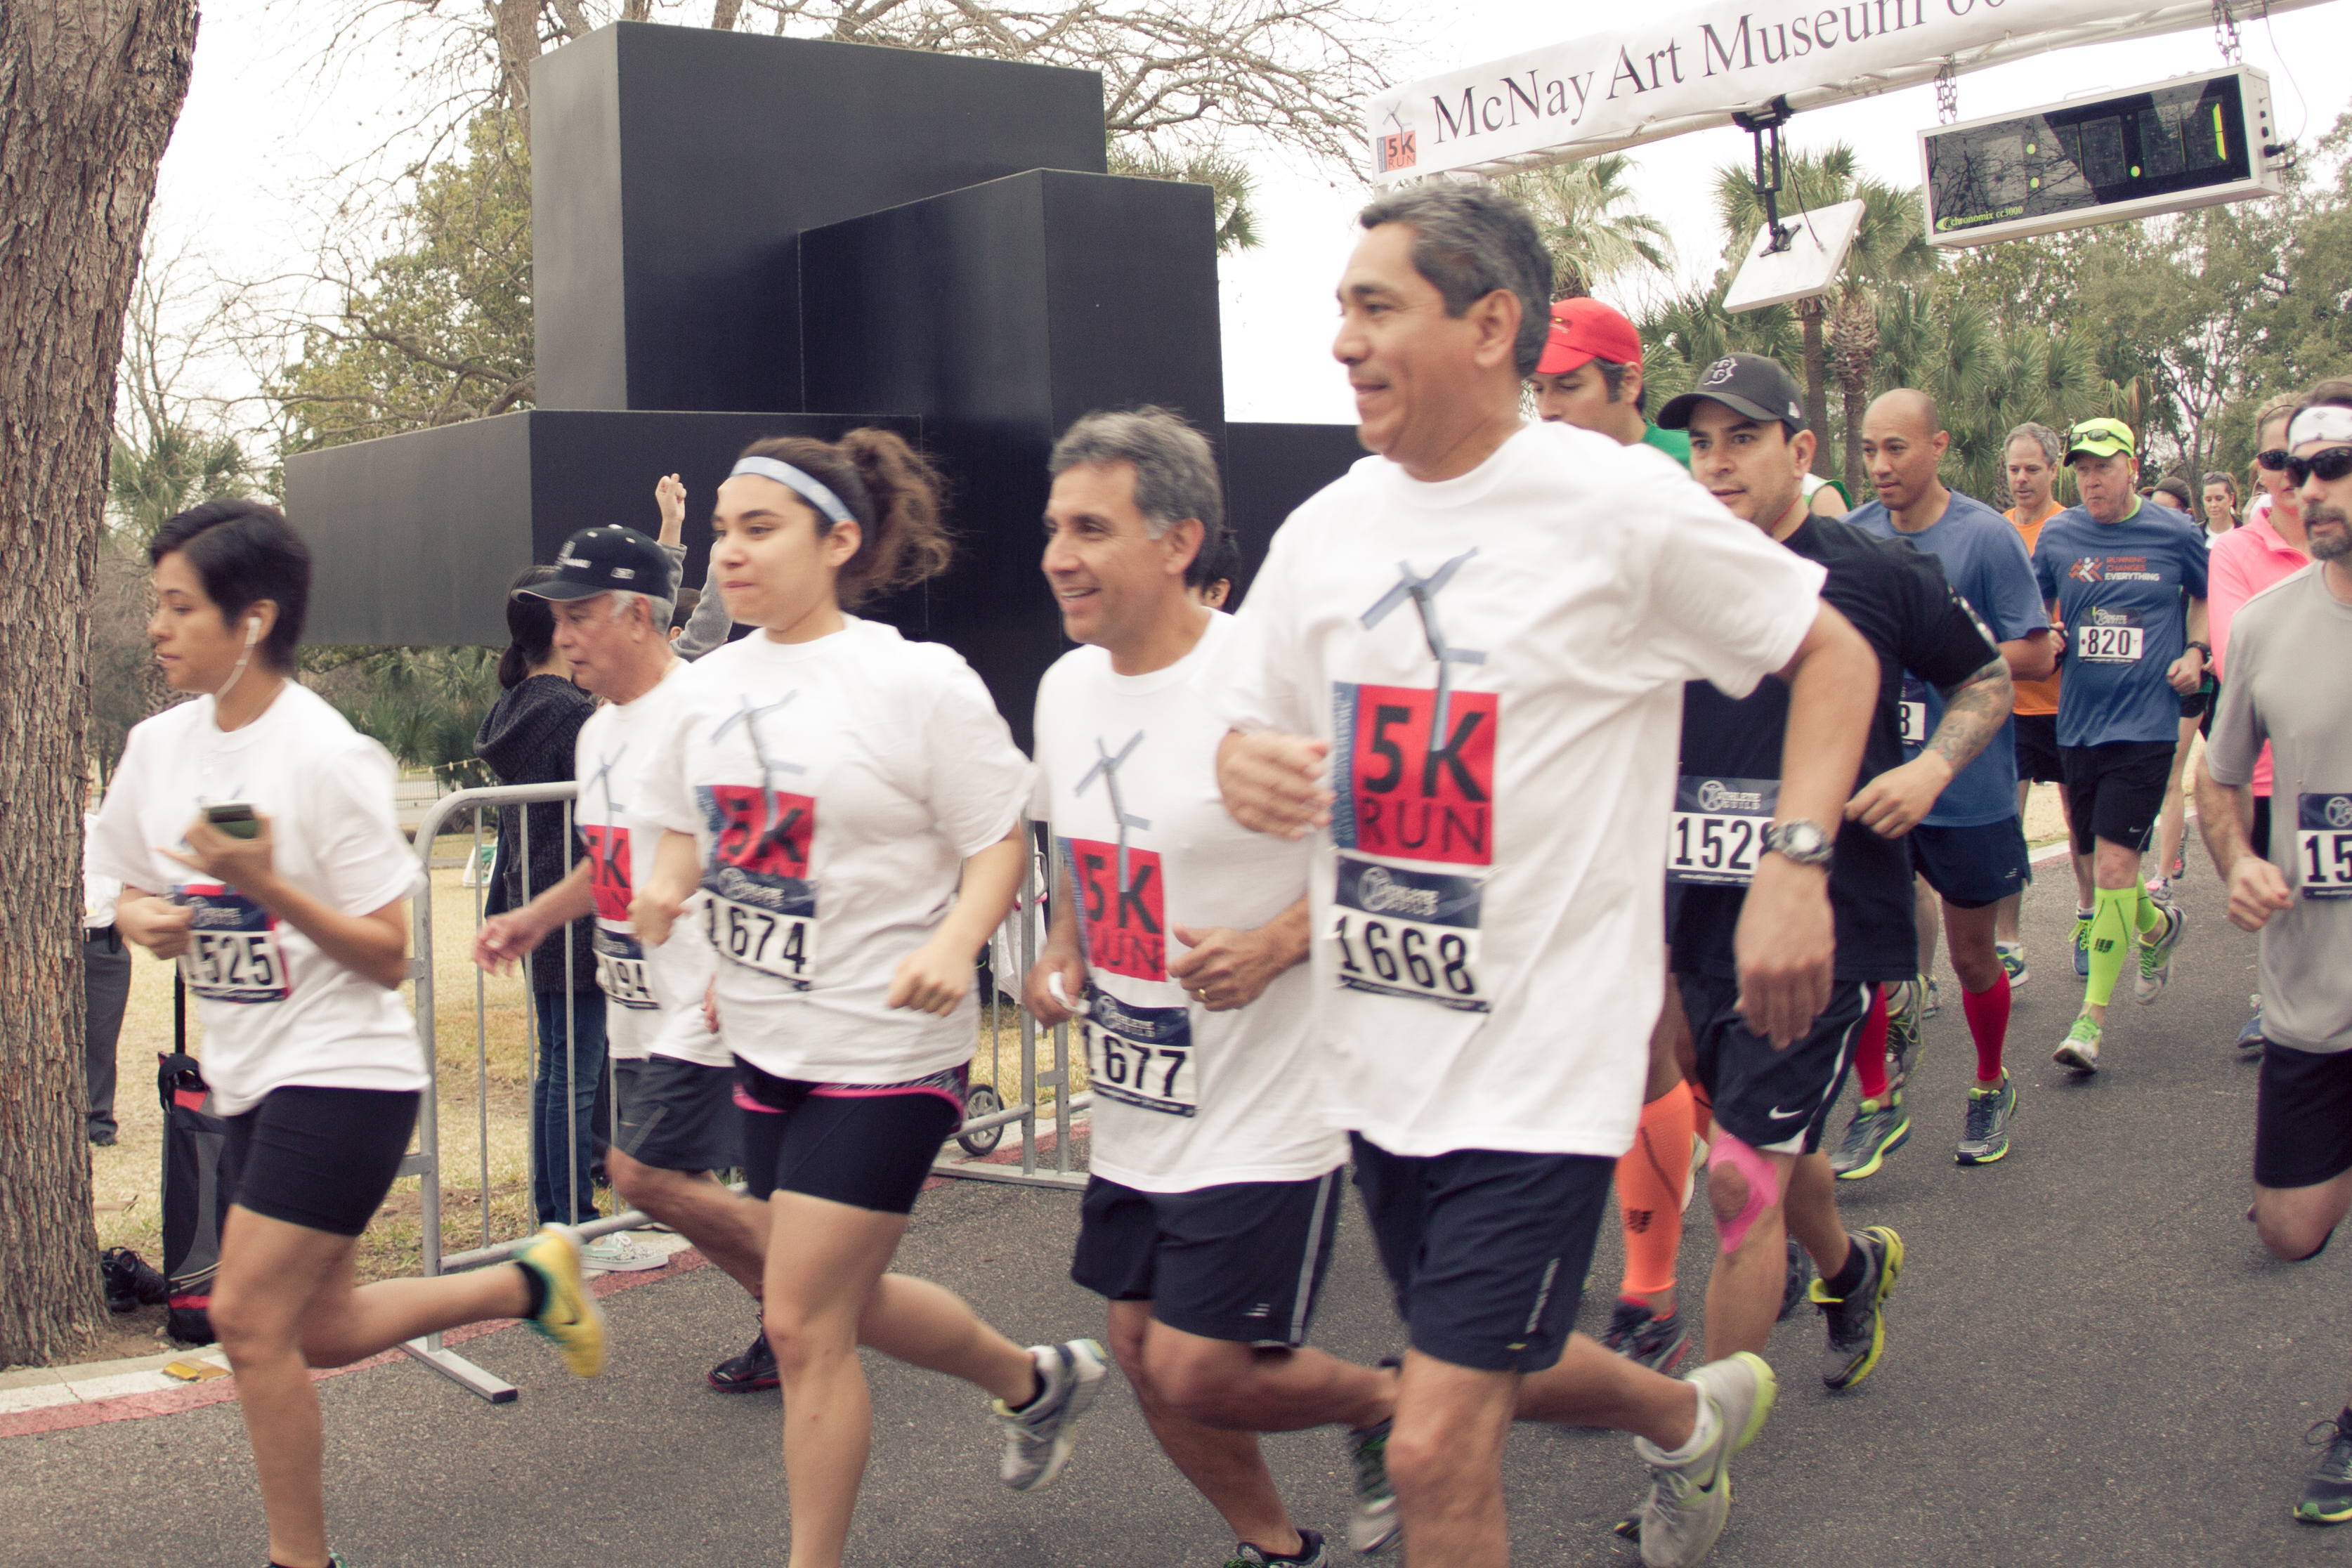 Founder's Day: 5K Run/Walk